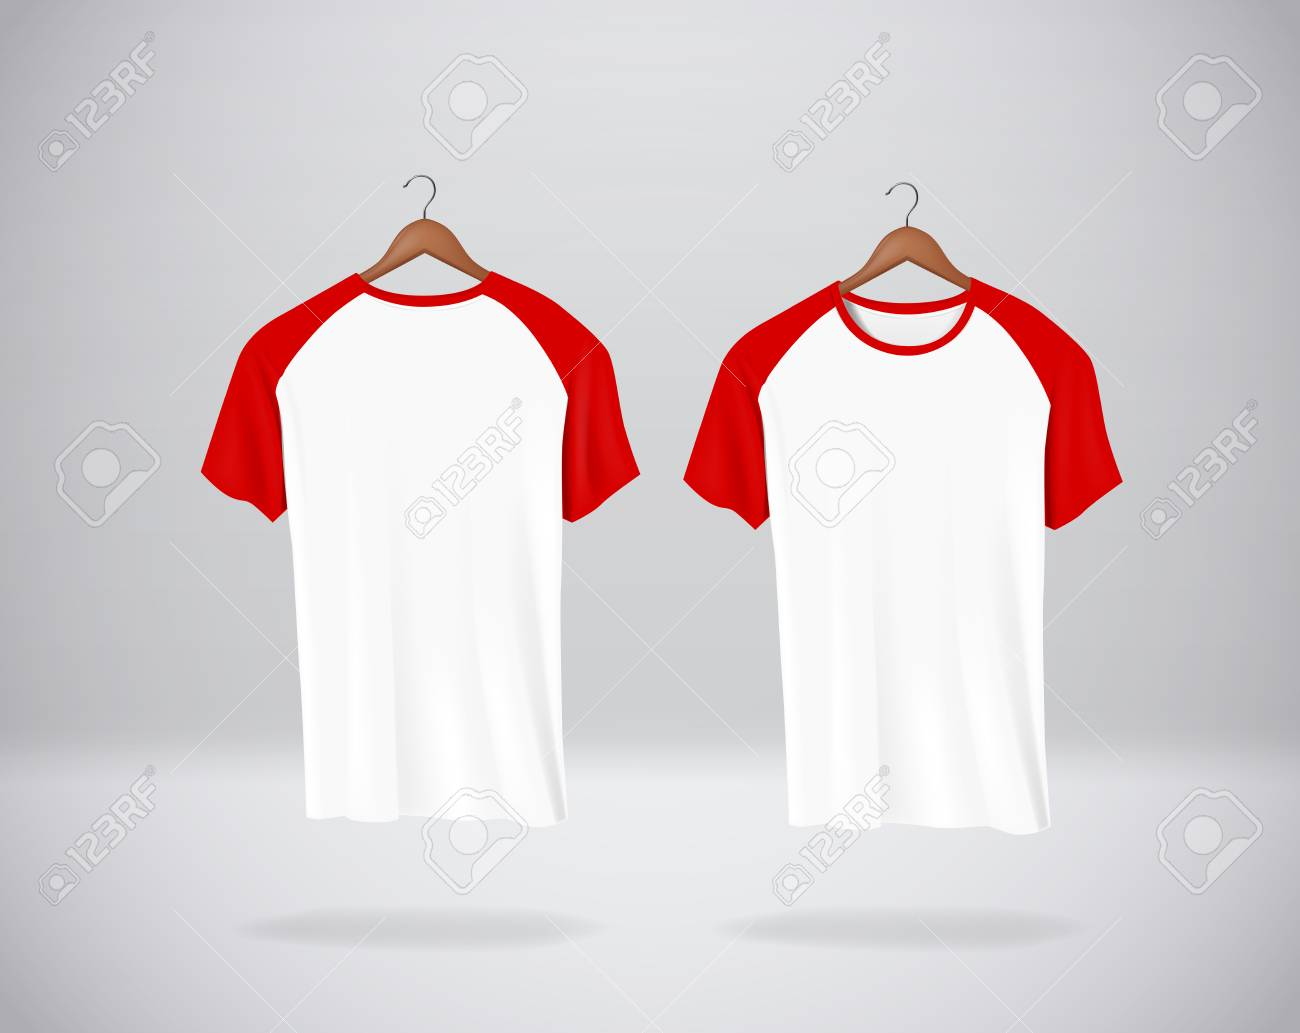 Red Baseball T-Shirts Mock-up clothes hanging isolated on wall, blank front and rear side view. - 125298554